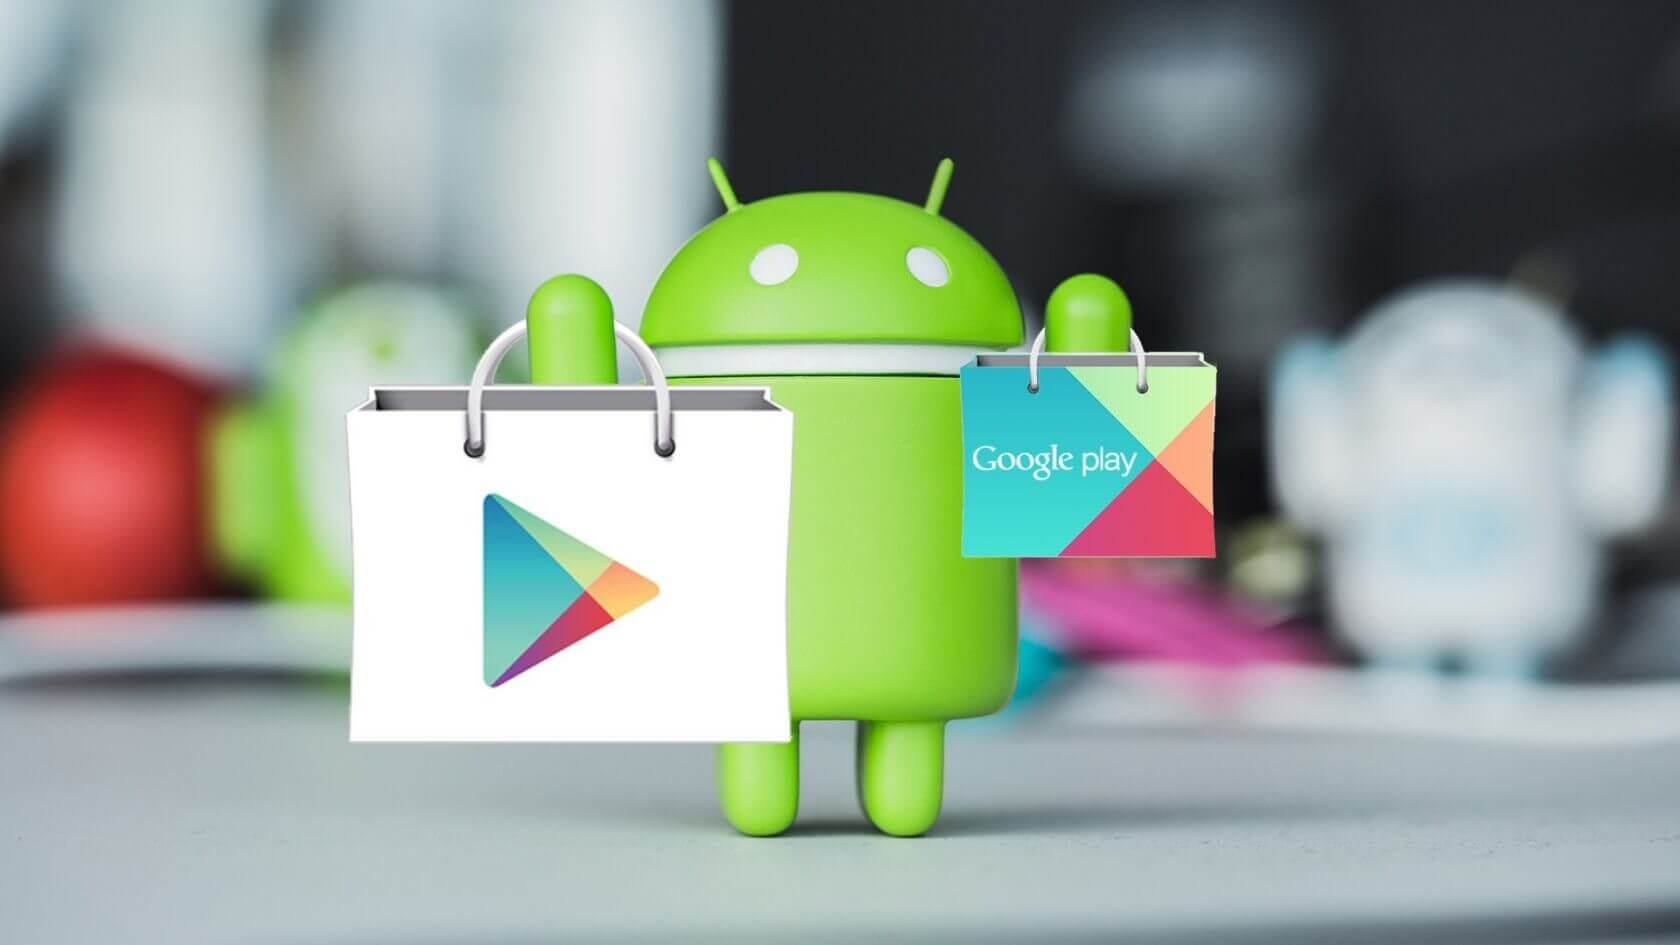 Trend Micro exposes 85 adware apps on Google Play with 8M+ downloads